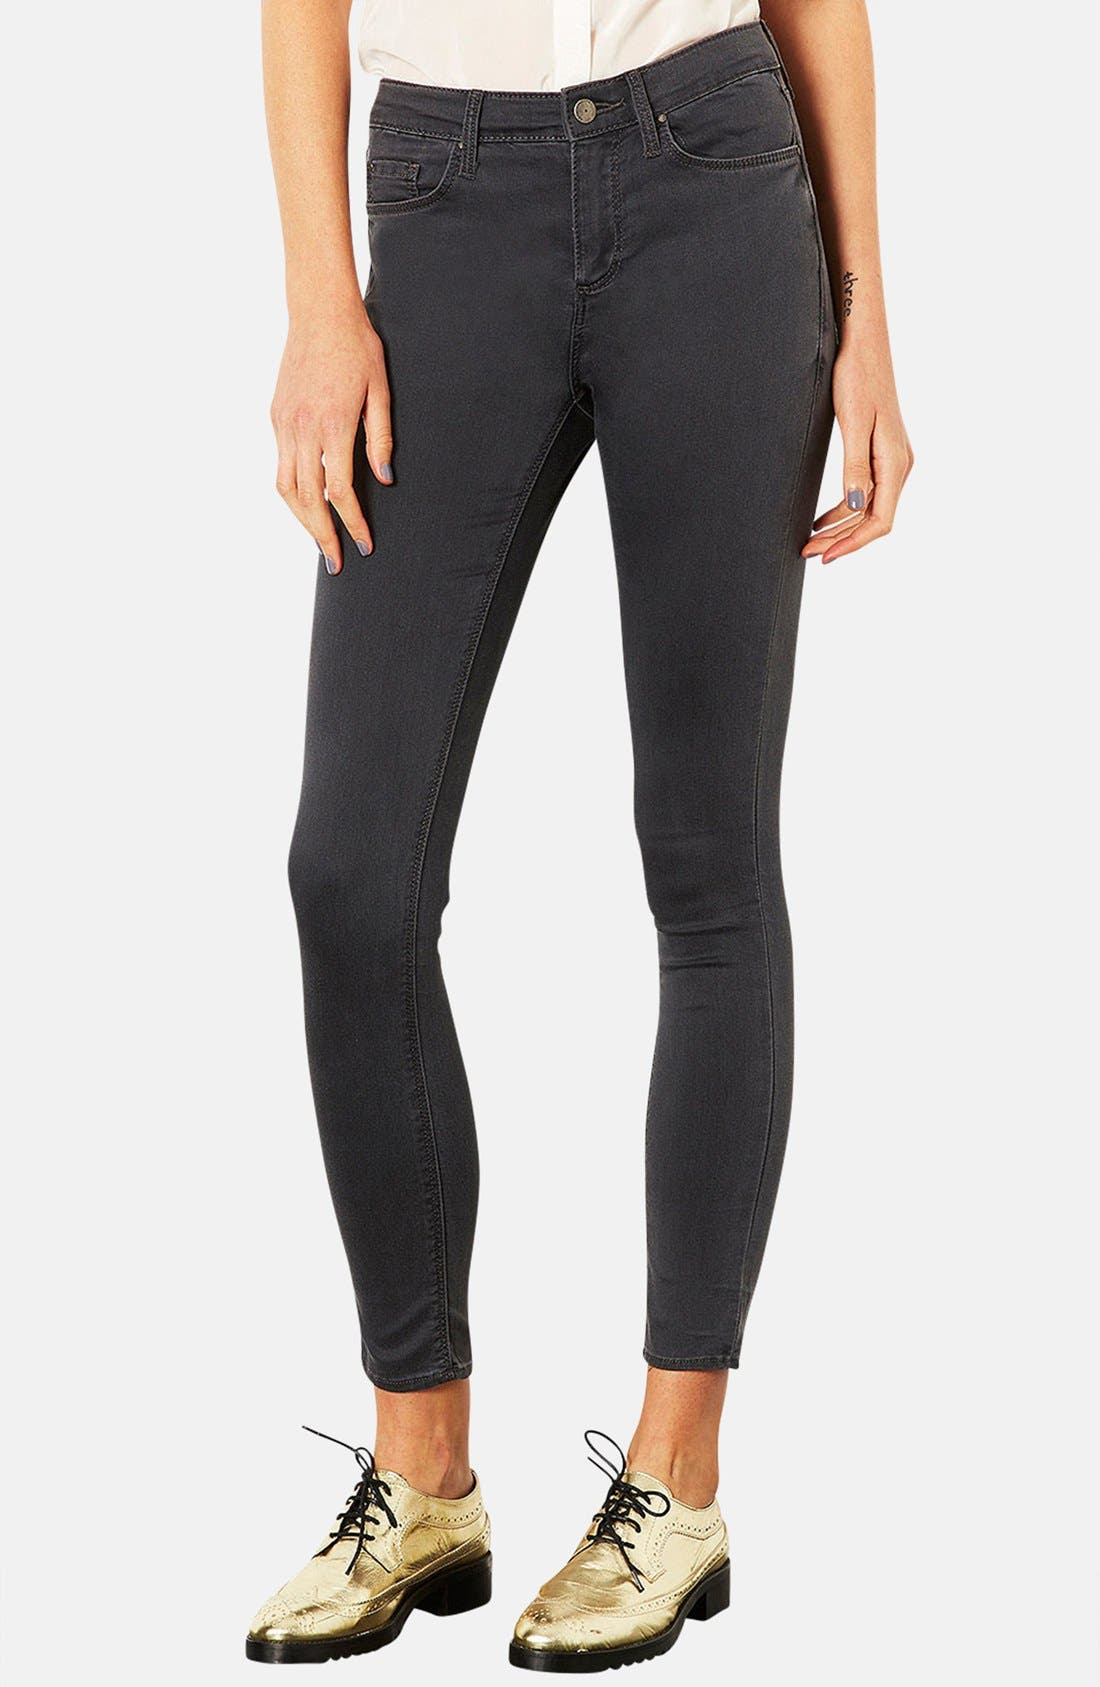 Alternate Image 1 Selected - Topshop Moto 'Leigh' Skinny Jeans (Regular & Short)